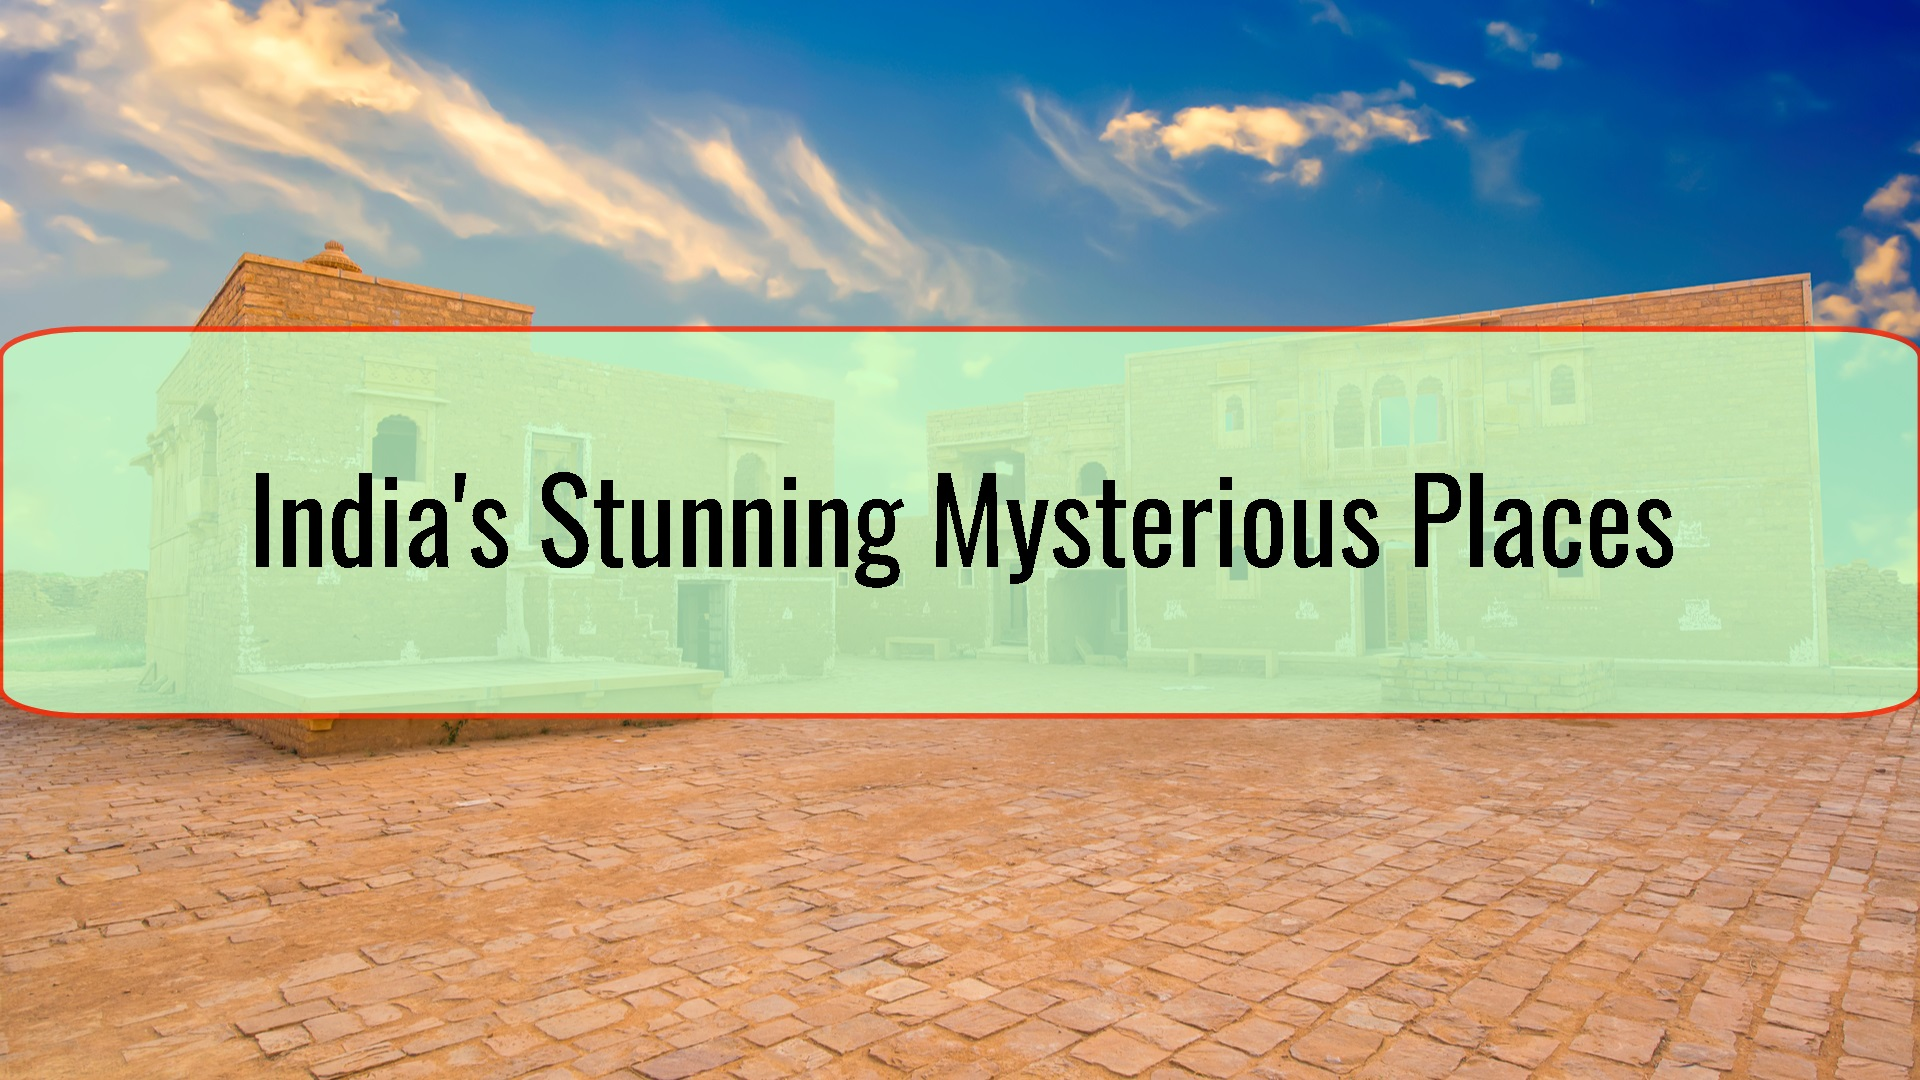 India's Stunning Mysterious Places